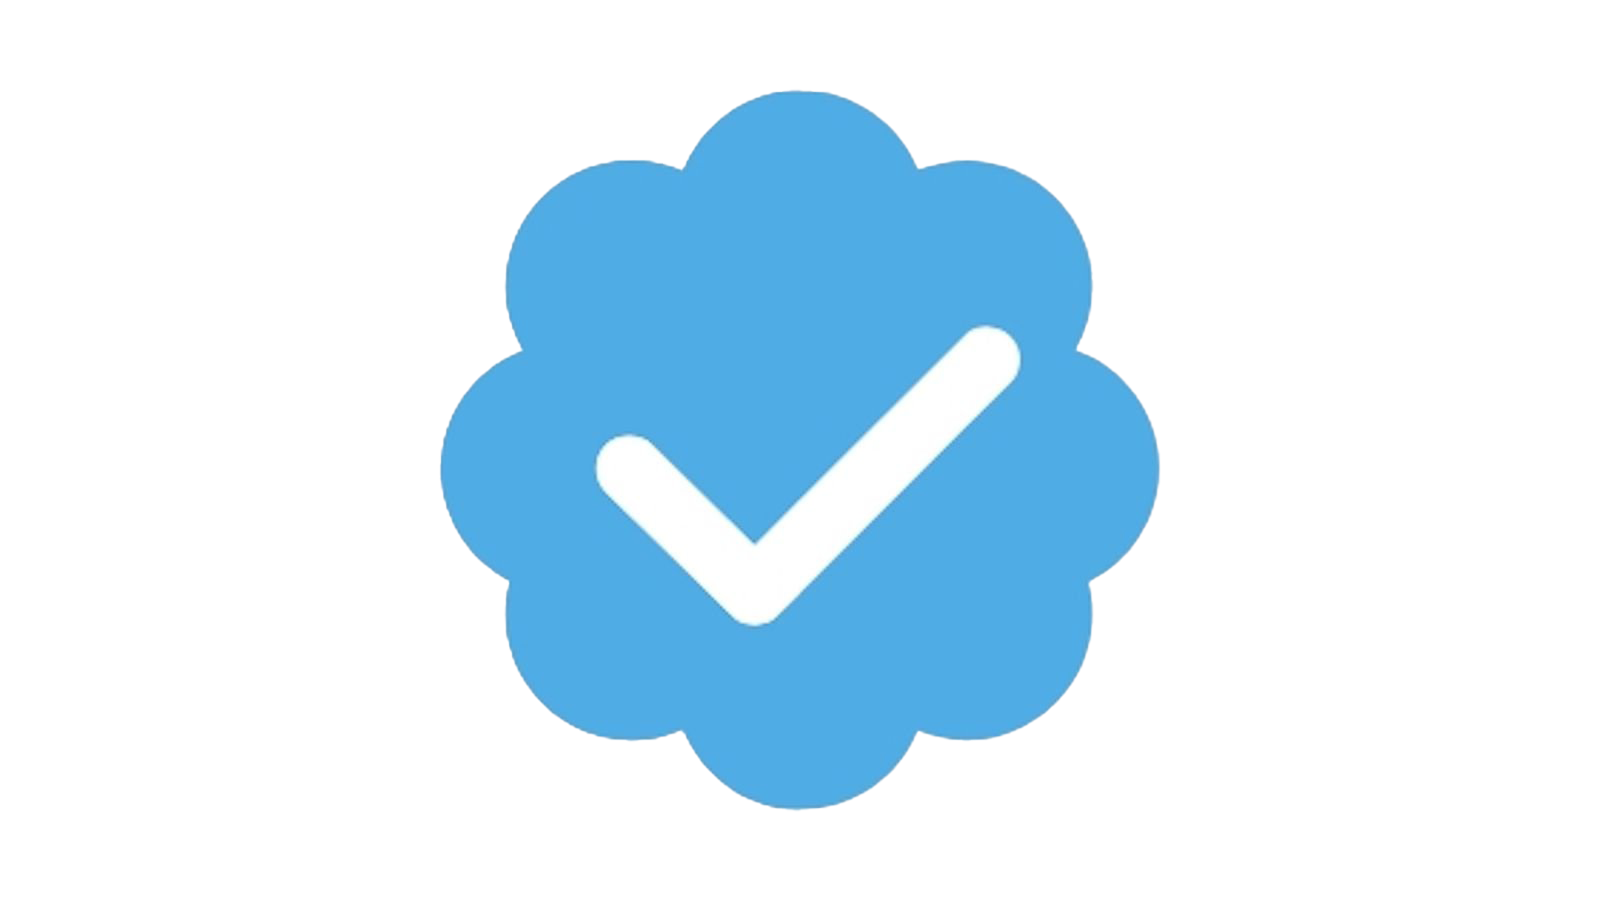 Twitter-Verified-Badge-PNG-HD.png